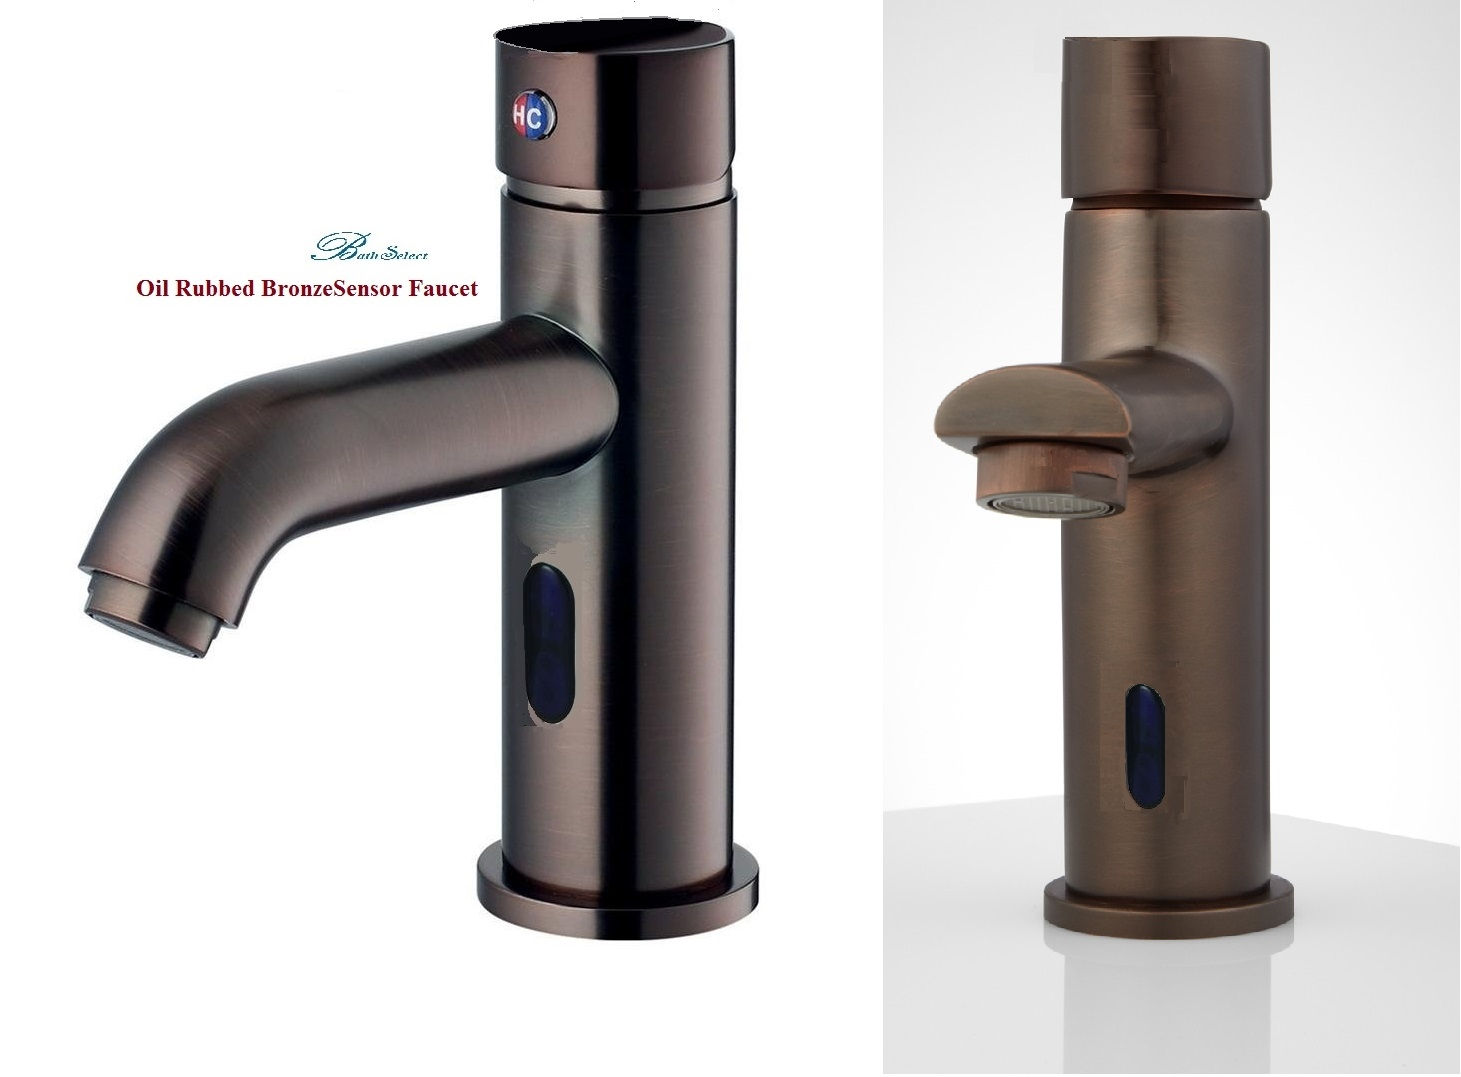 motion activated bath faucet motion activated bath faucet oil rubbed bronze motion sensor faucets 1461 x 1077